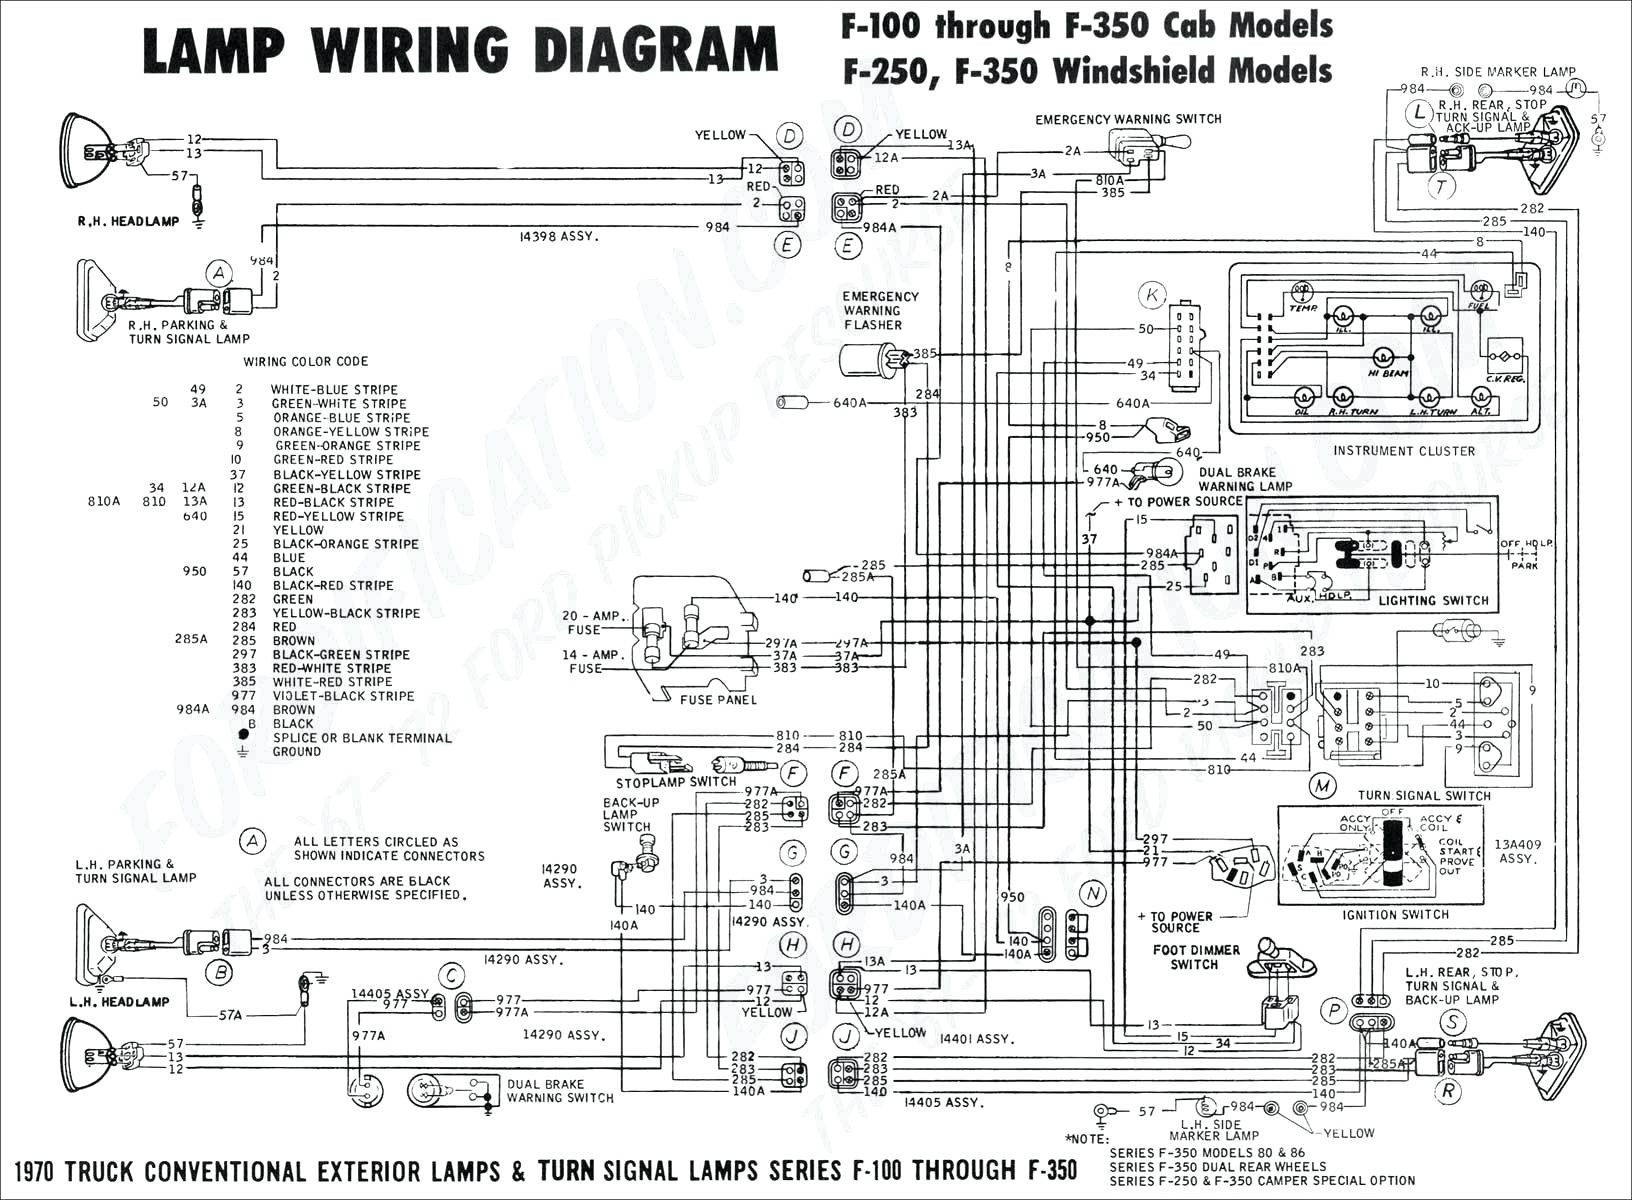 2004 Honda Accord Wiring Diagram Honda Accord Fuse Diagram Http  Wwwjustanswer Honda 4kxd6honda Of 2004 Honda